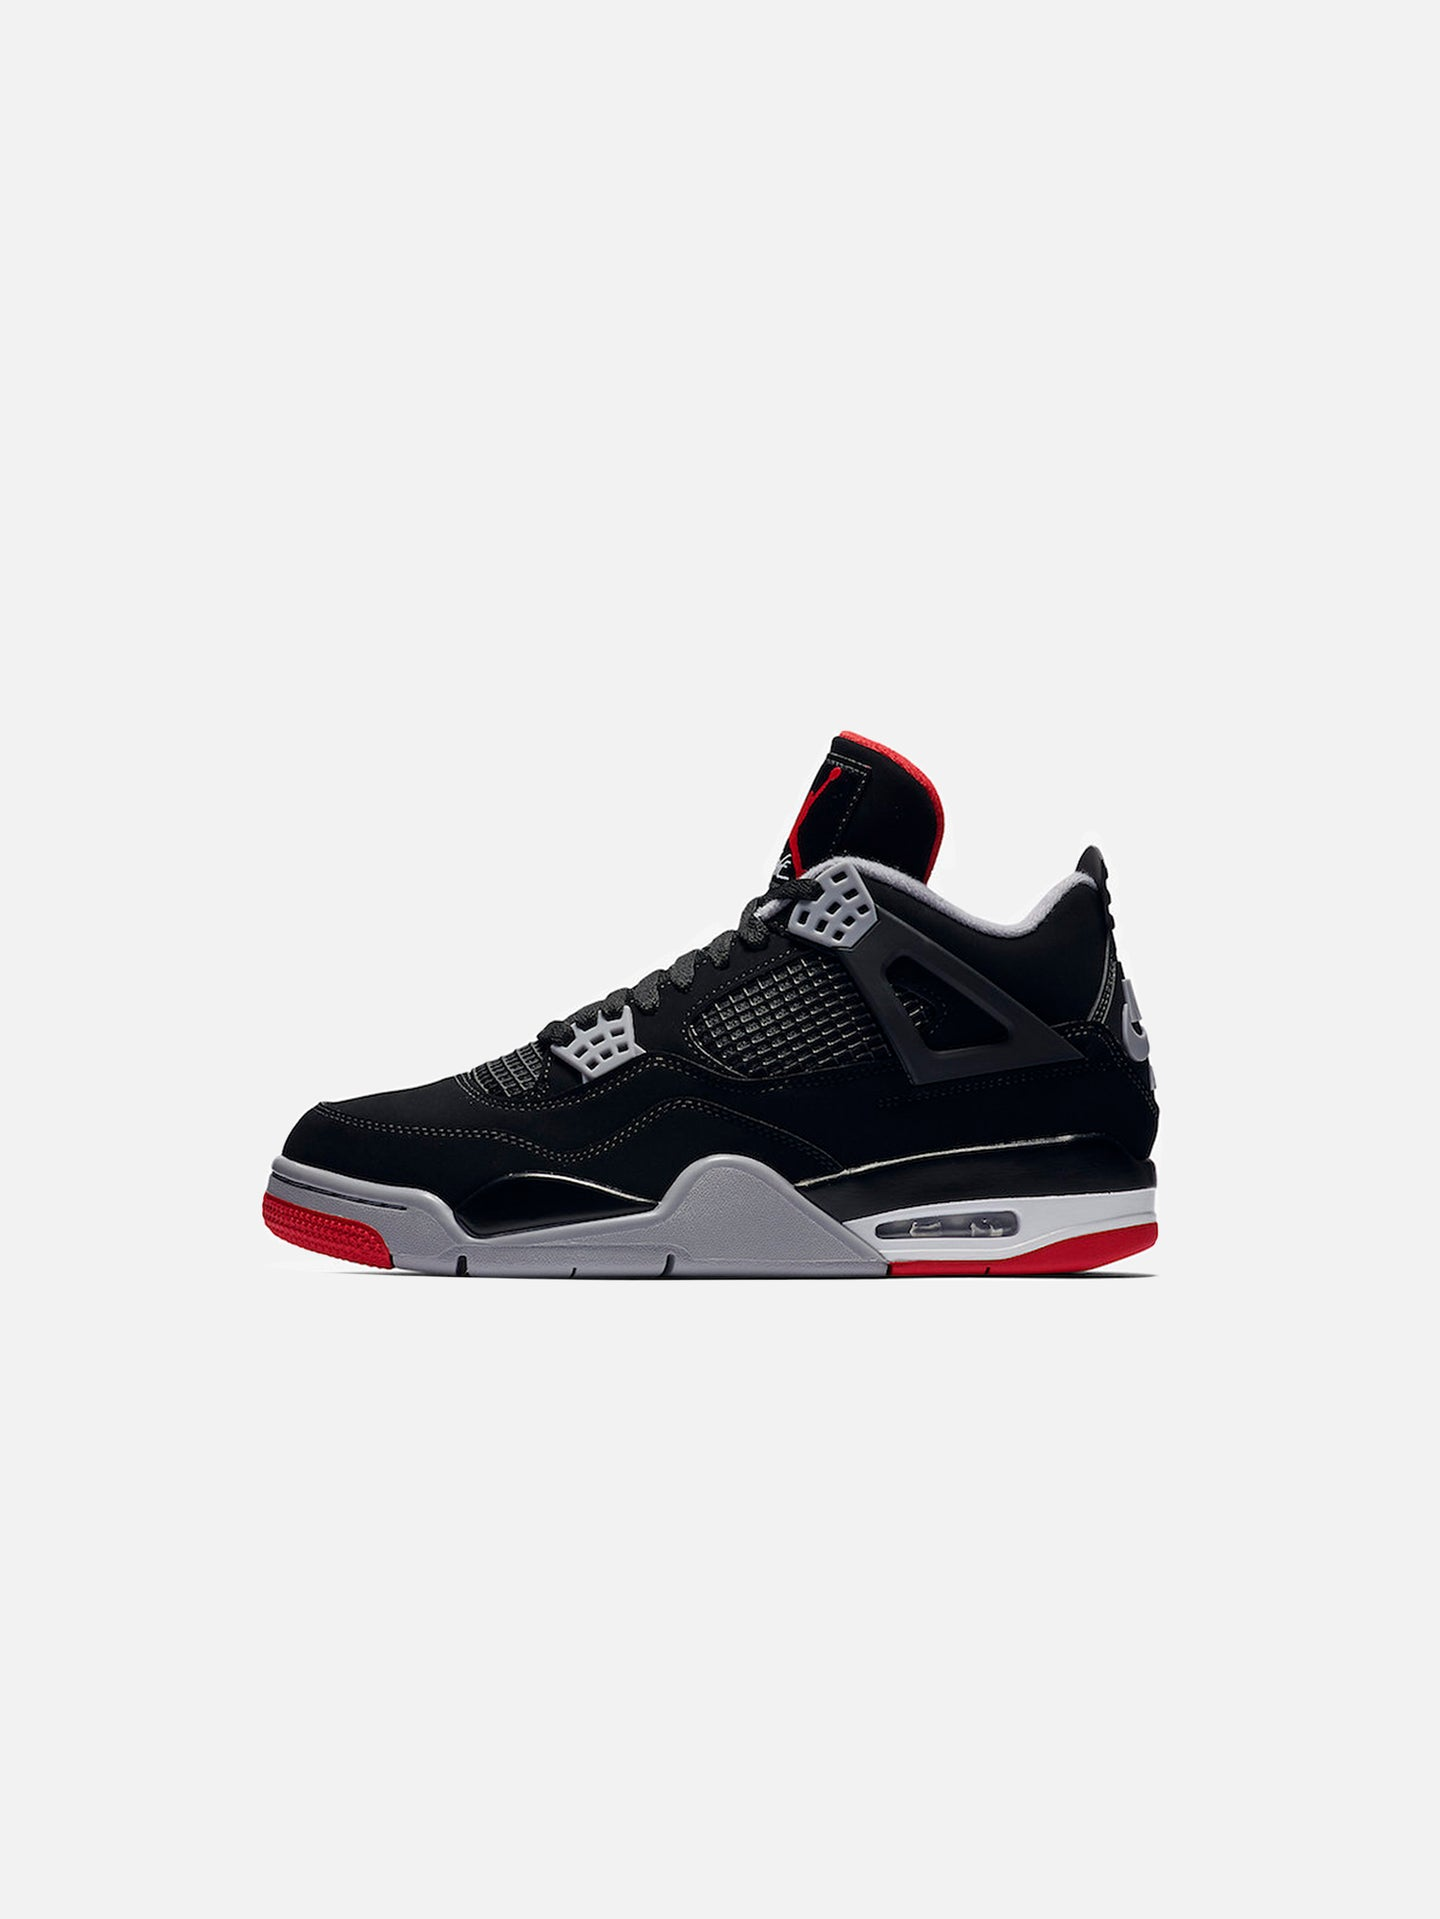 AIR JORDAN IV RETRO: BRED